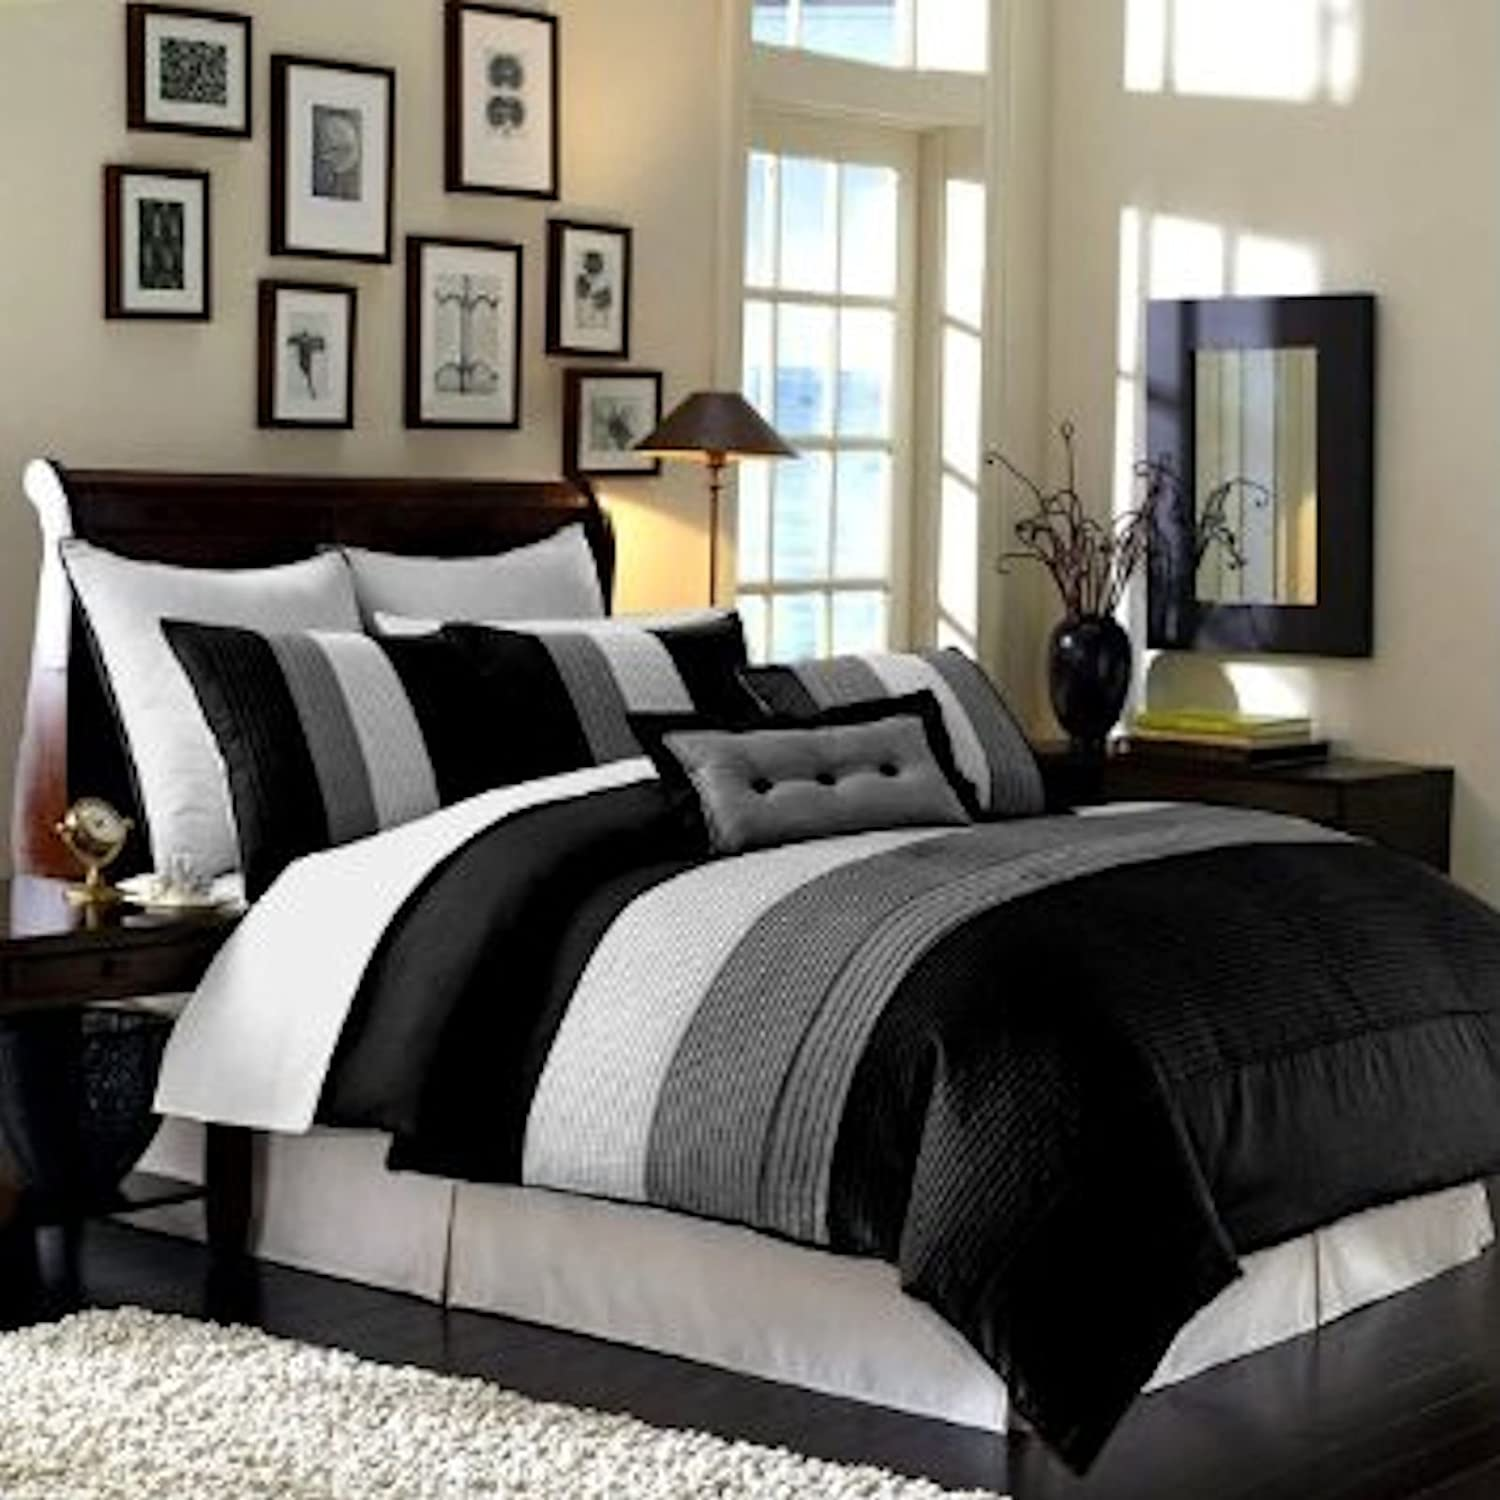 and luxury set bedding black dorma velvet bed ornate by white